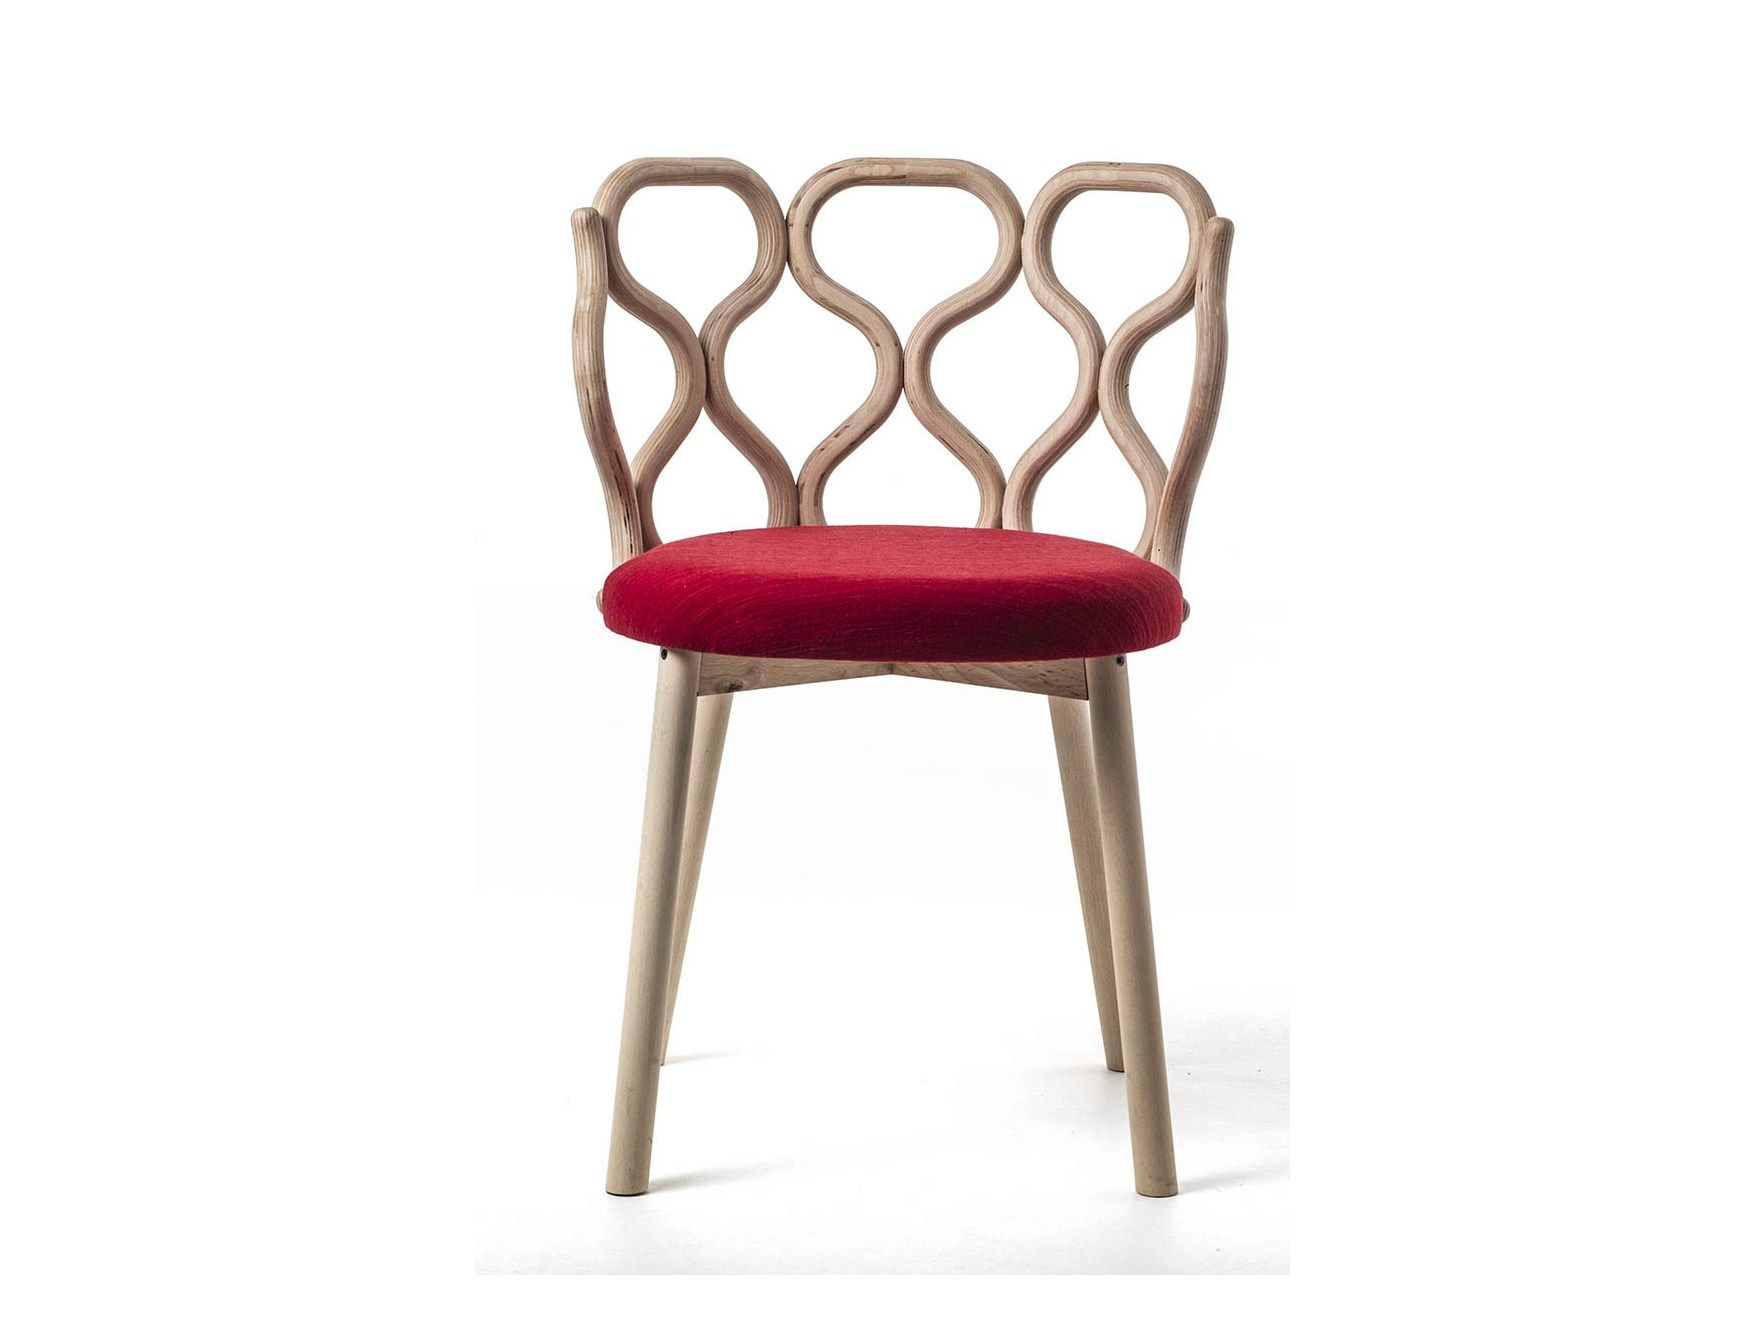 Cool wooden chair designs - Upholstered Wooden Chair Gerla Gerla Collection By Very Wood Design Lucidipevere